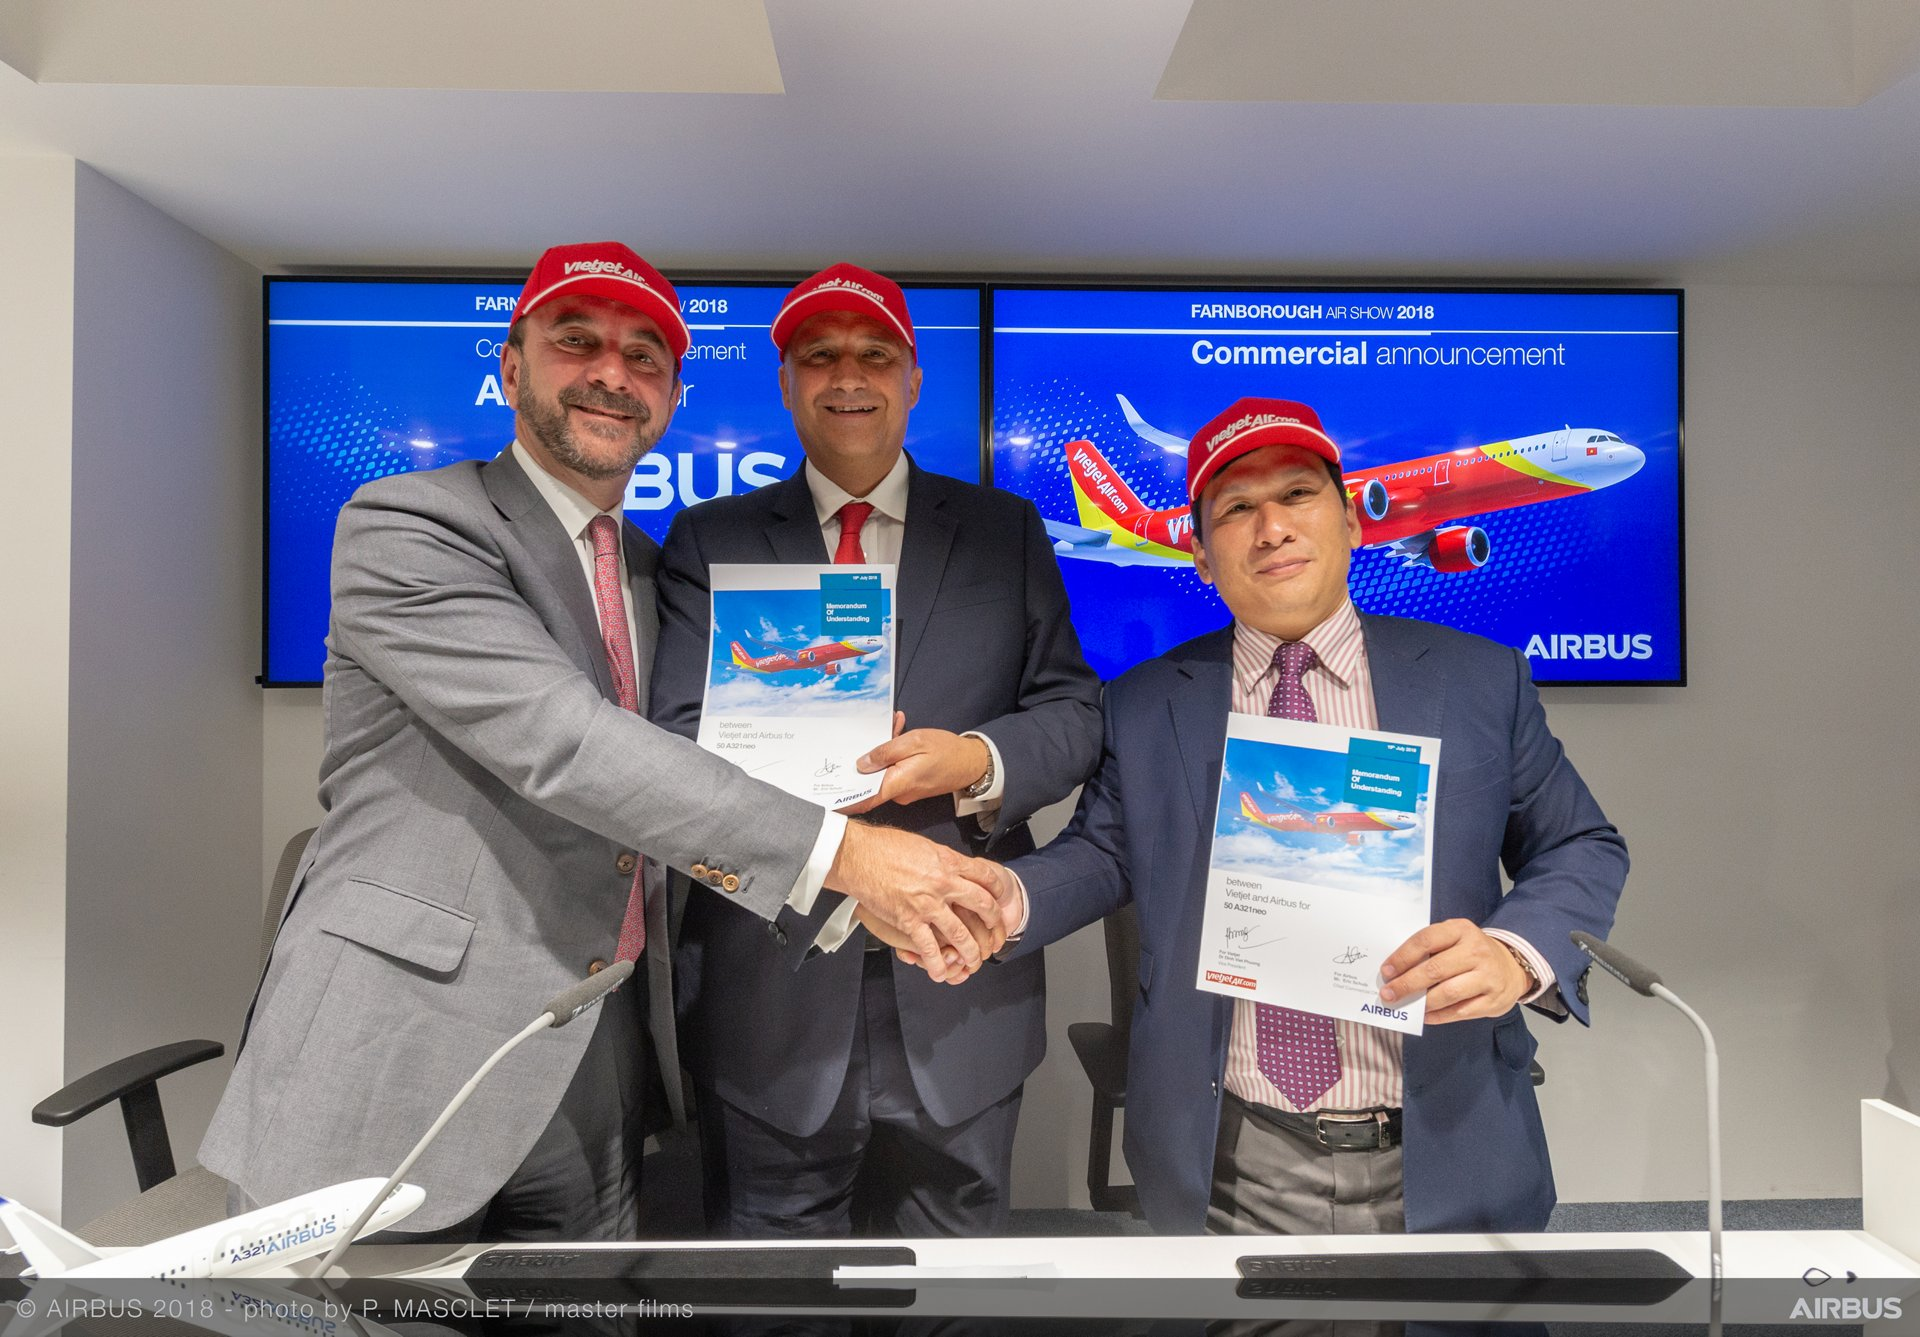 The signing of Vietjet's memorandum of understanding with Airbus for the purchase of 50 additional A321neo single-aisle aircraft is marked on Day 4 of the Farnborough Airshow by (from right to left): Vietjet Vice President Dinh Viet Phuong; Airbus Chief Commercial Officer Eric Schulz; and Jean Francois Laval, Airbus Executive Vice President, Asia